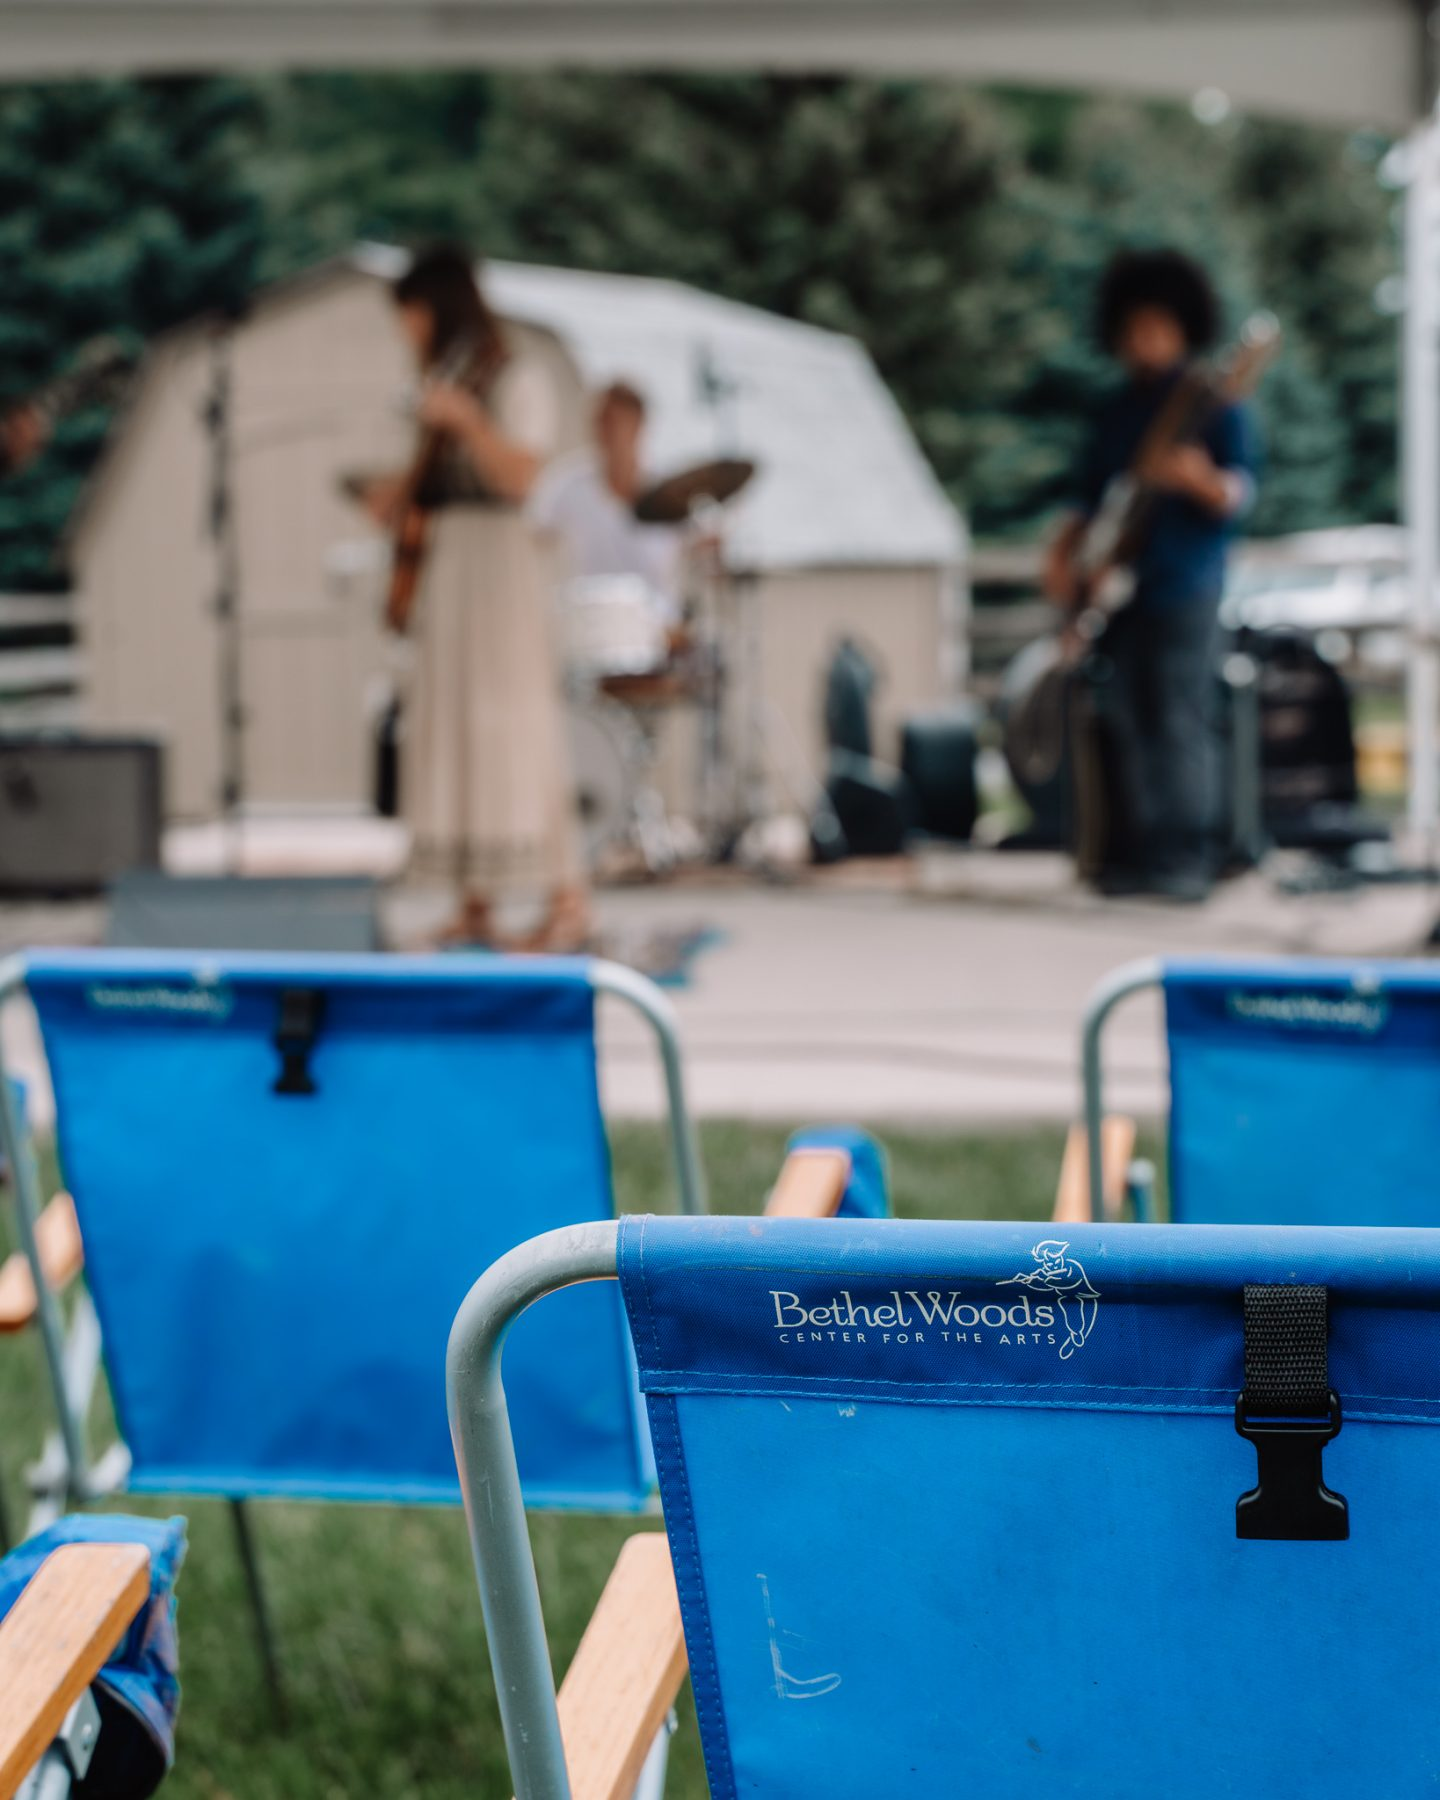 Live music at Bethel Woods